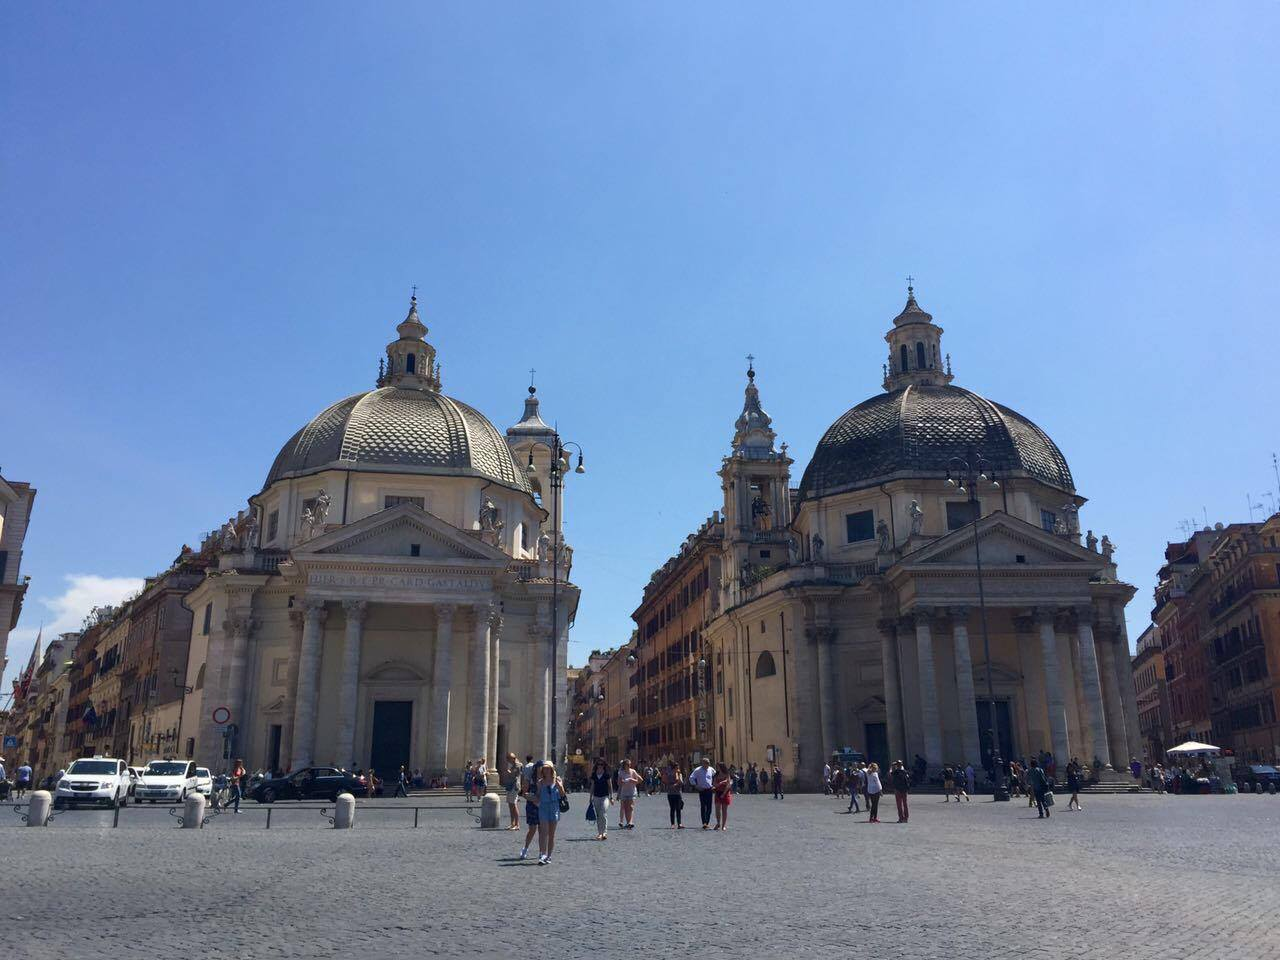 Piazza del Popolo, the two churches of Santa Maria